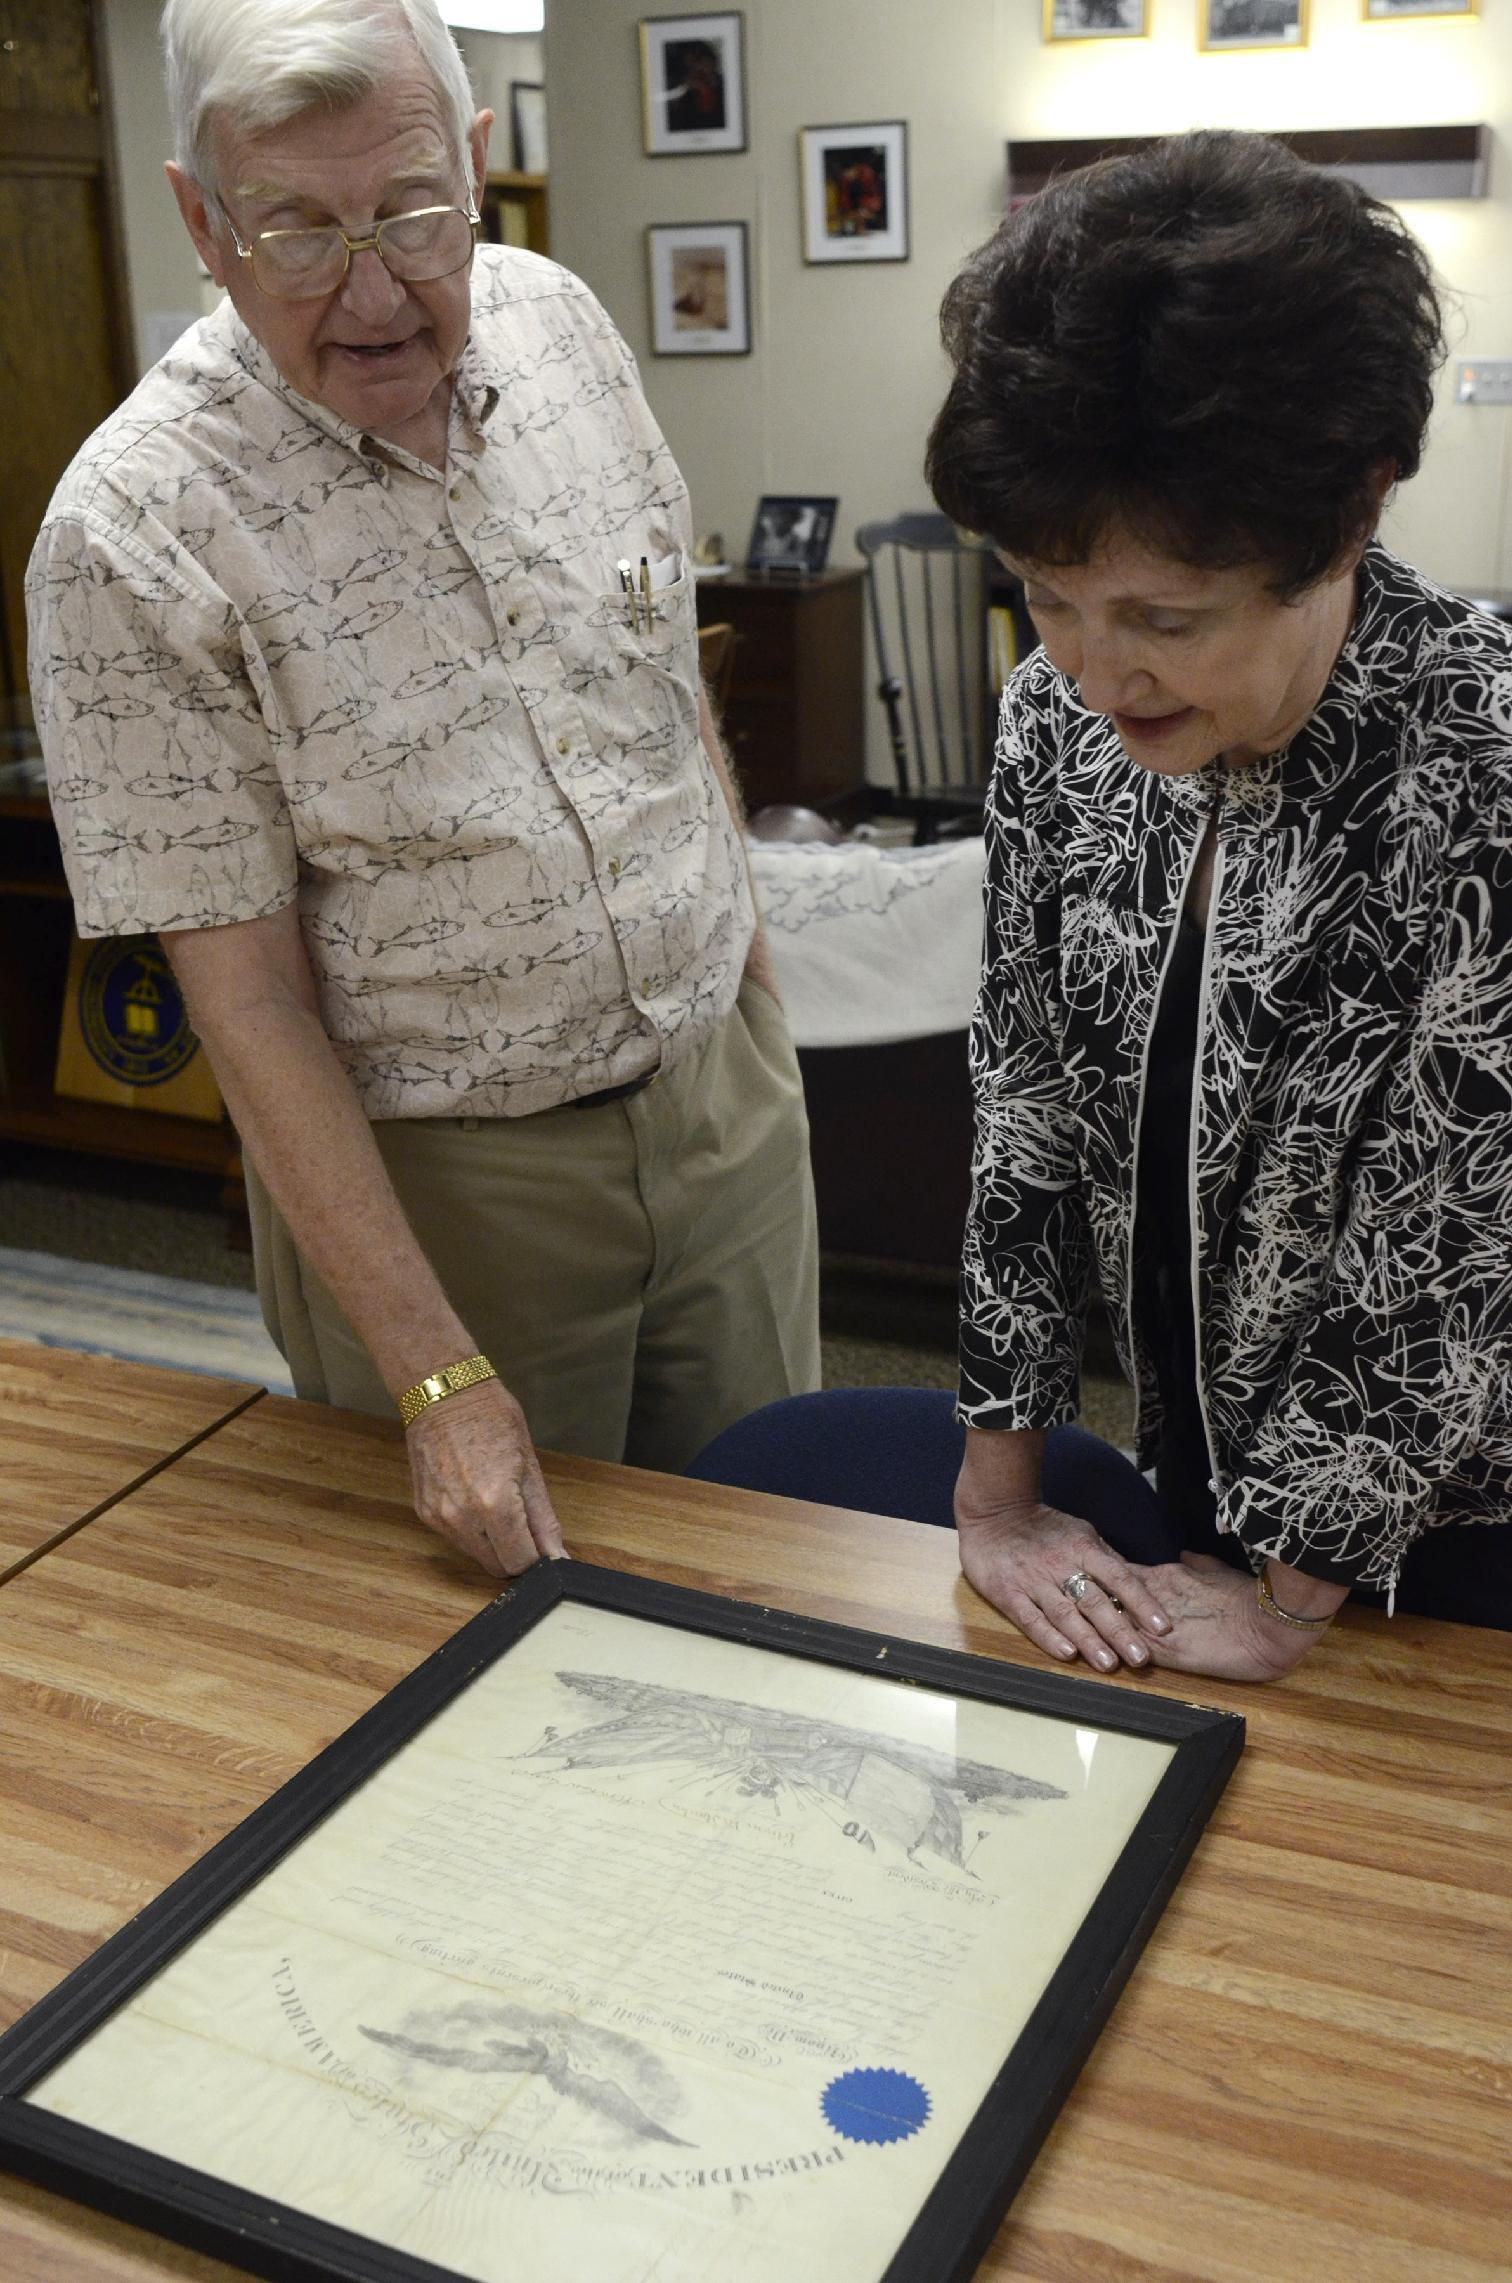 In this Tuesday, June 4, 2013, photo, Lycoming College historian, John Piper, left, and Janet Hurlbert, dean and director of the Snowden Library, look over a certificate signed by Abraham Lincoln in the college archives in Williamsport, Pa. The document naming the school's founder as a Civil War chaplain resurfaced after going missing years ago. (AP Photo/Ralph Wilson)